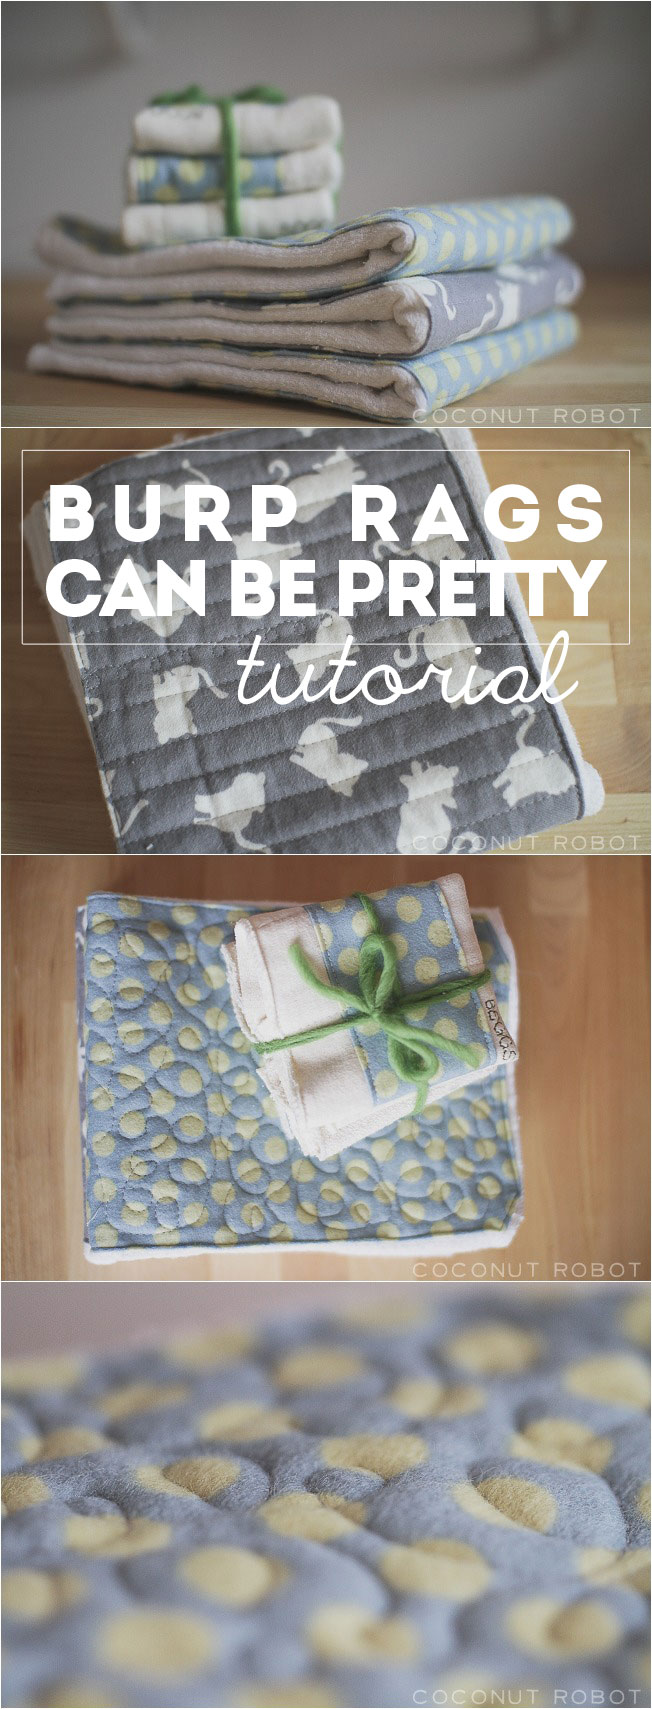 burp-rags-for-pinterest